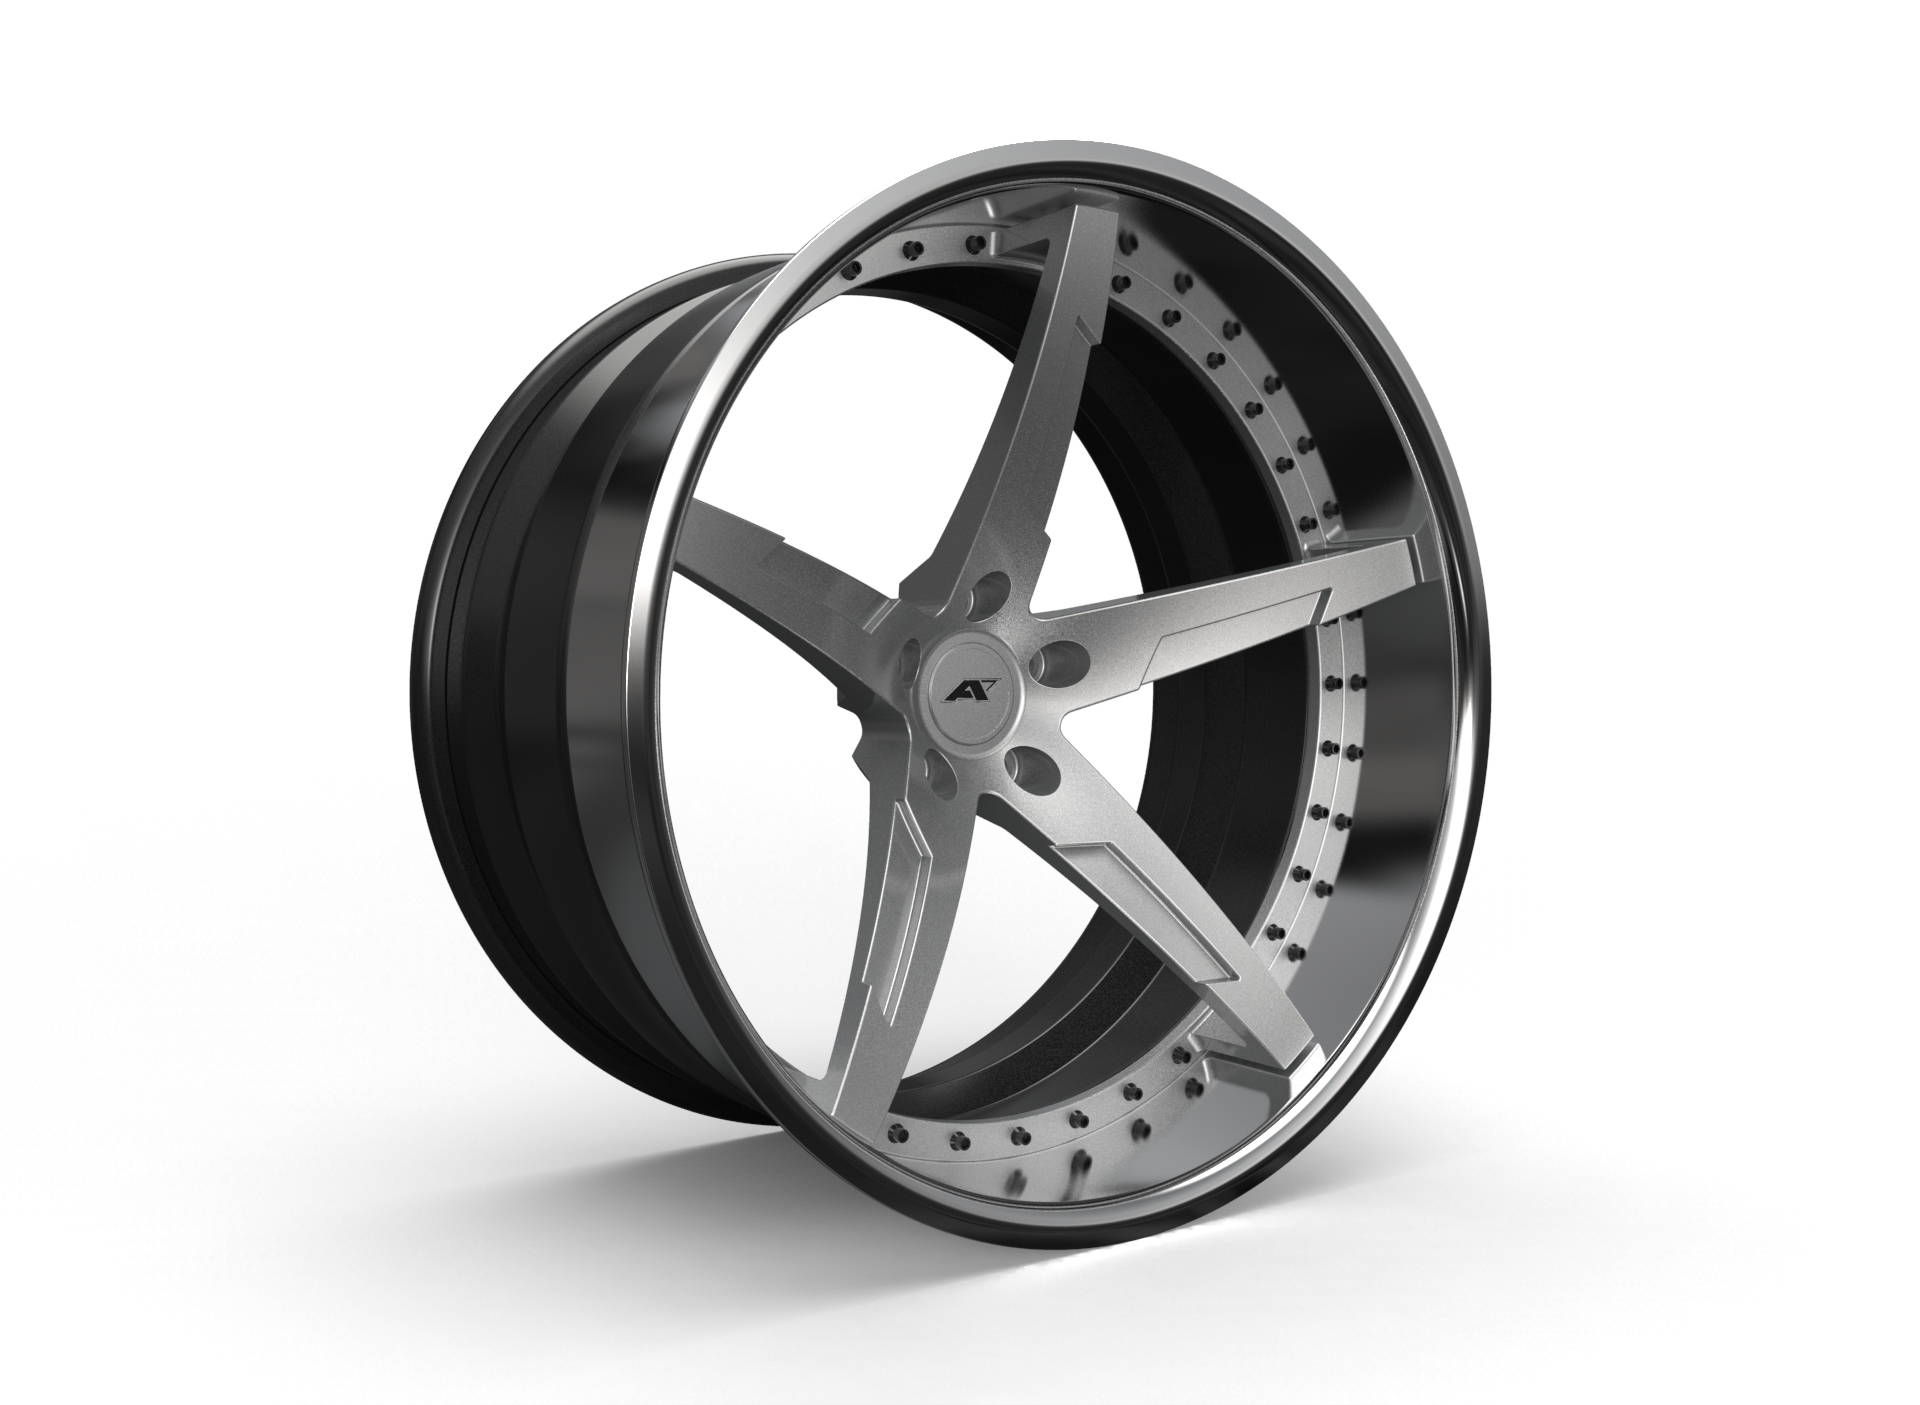 alphamale_wheels_4.94.jpg